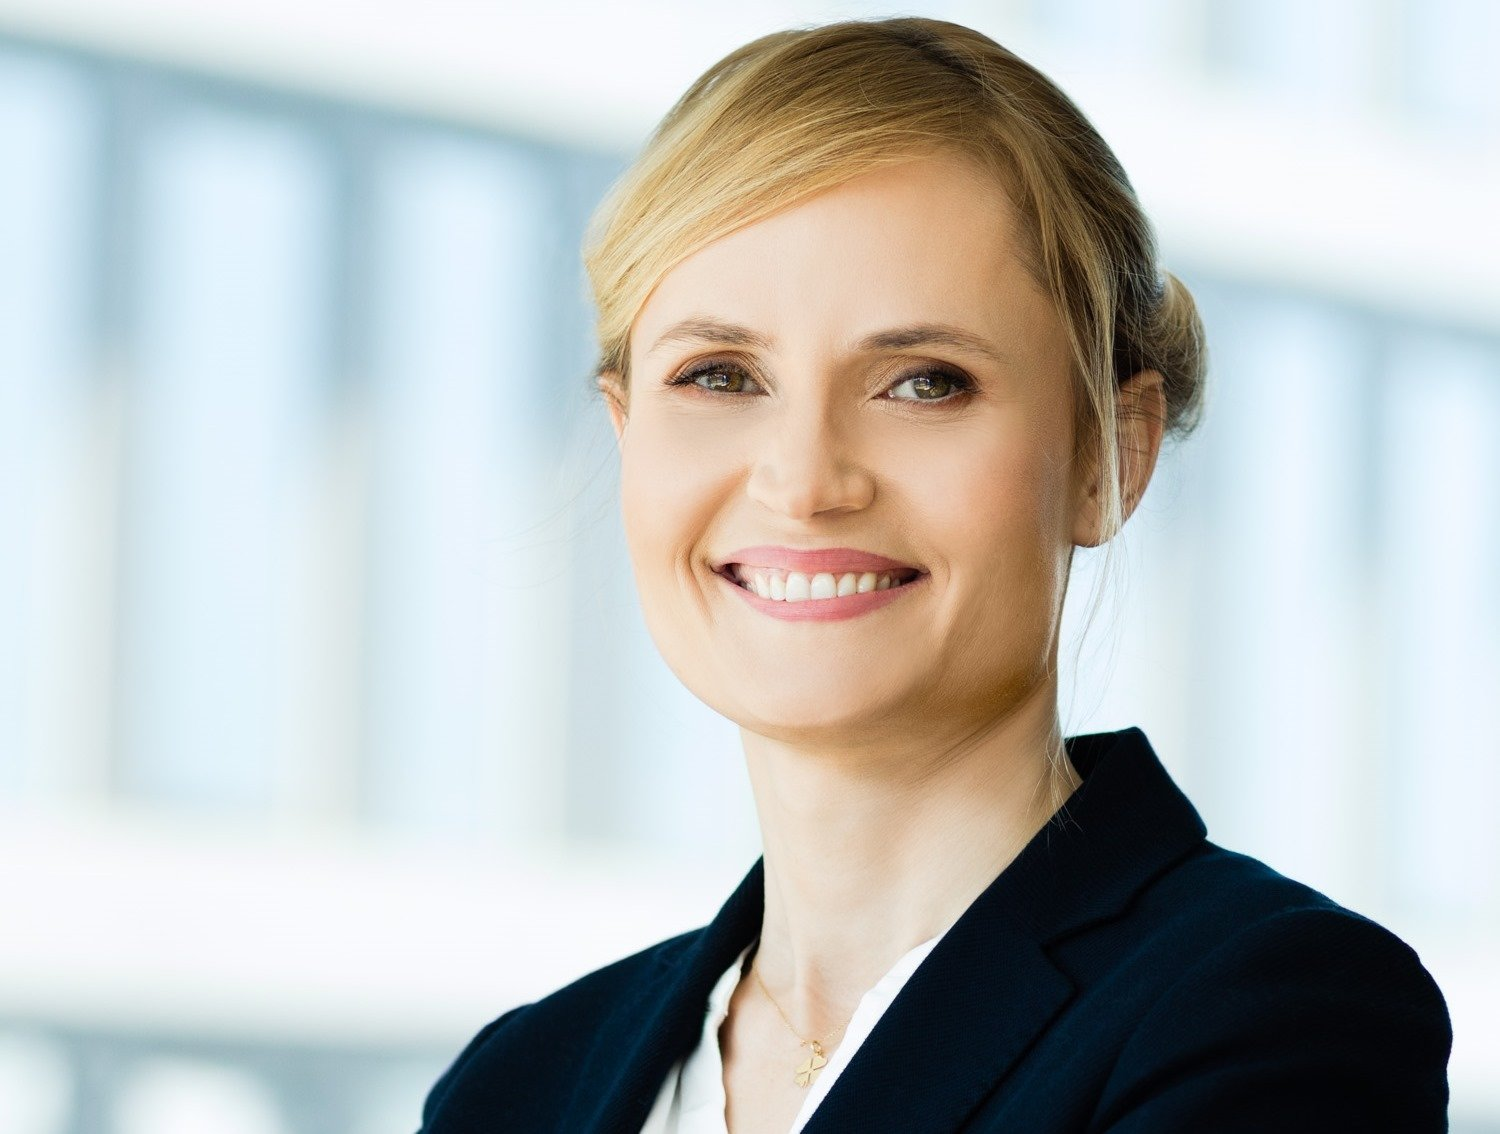 Iwona Pokwicka is the new Vice President of the Board of Medicover sp. z o.o  and Director of Operations for our Clinic Business